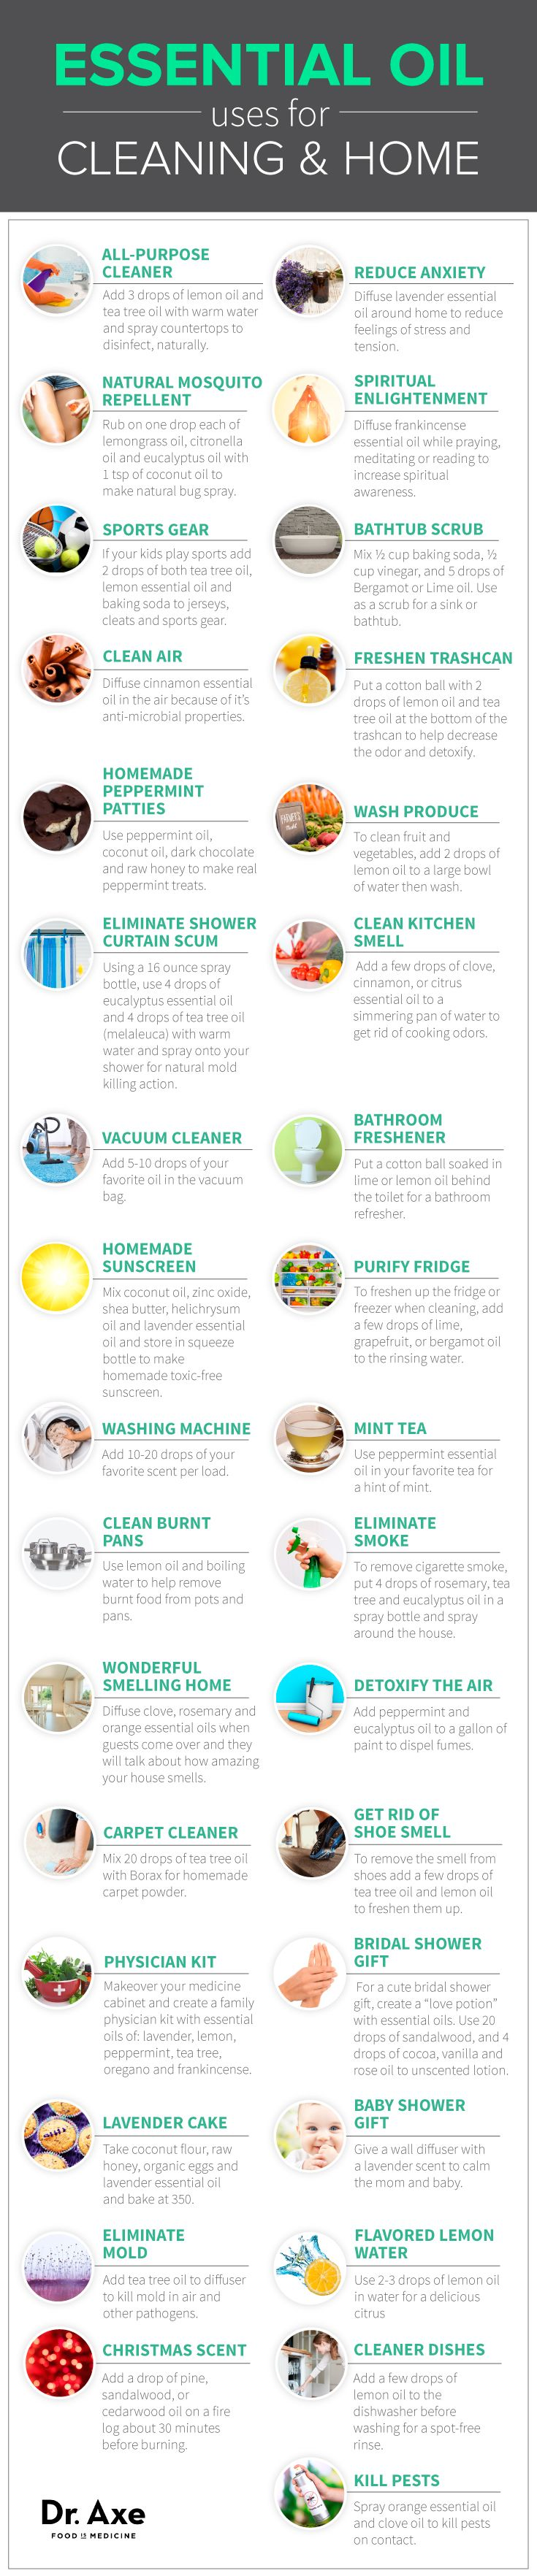 Essential Oils - Home & Cleaning